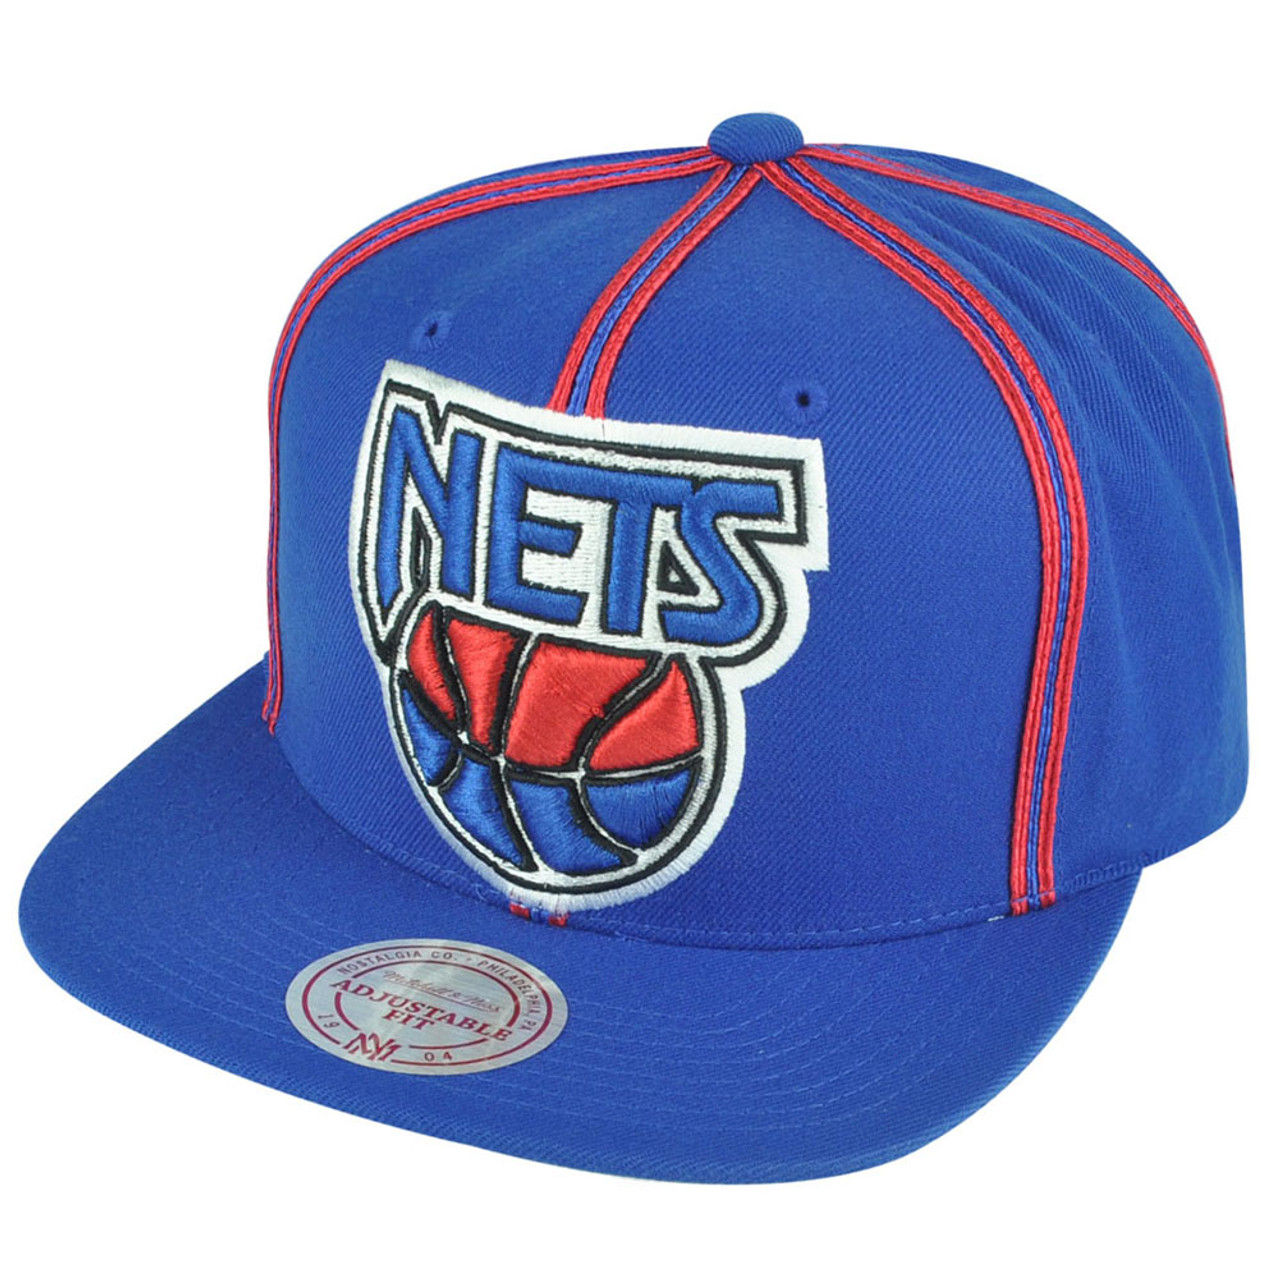 391d70778cc NBA Mitchell Ness HWC New Jersey Nets NJ08 Panel Outline Retro Snapback Hat  Cap - Cap Store Online.com